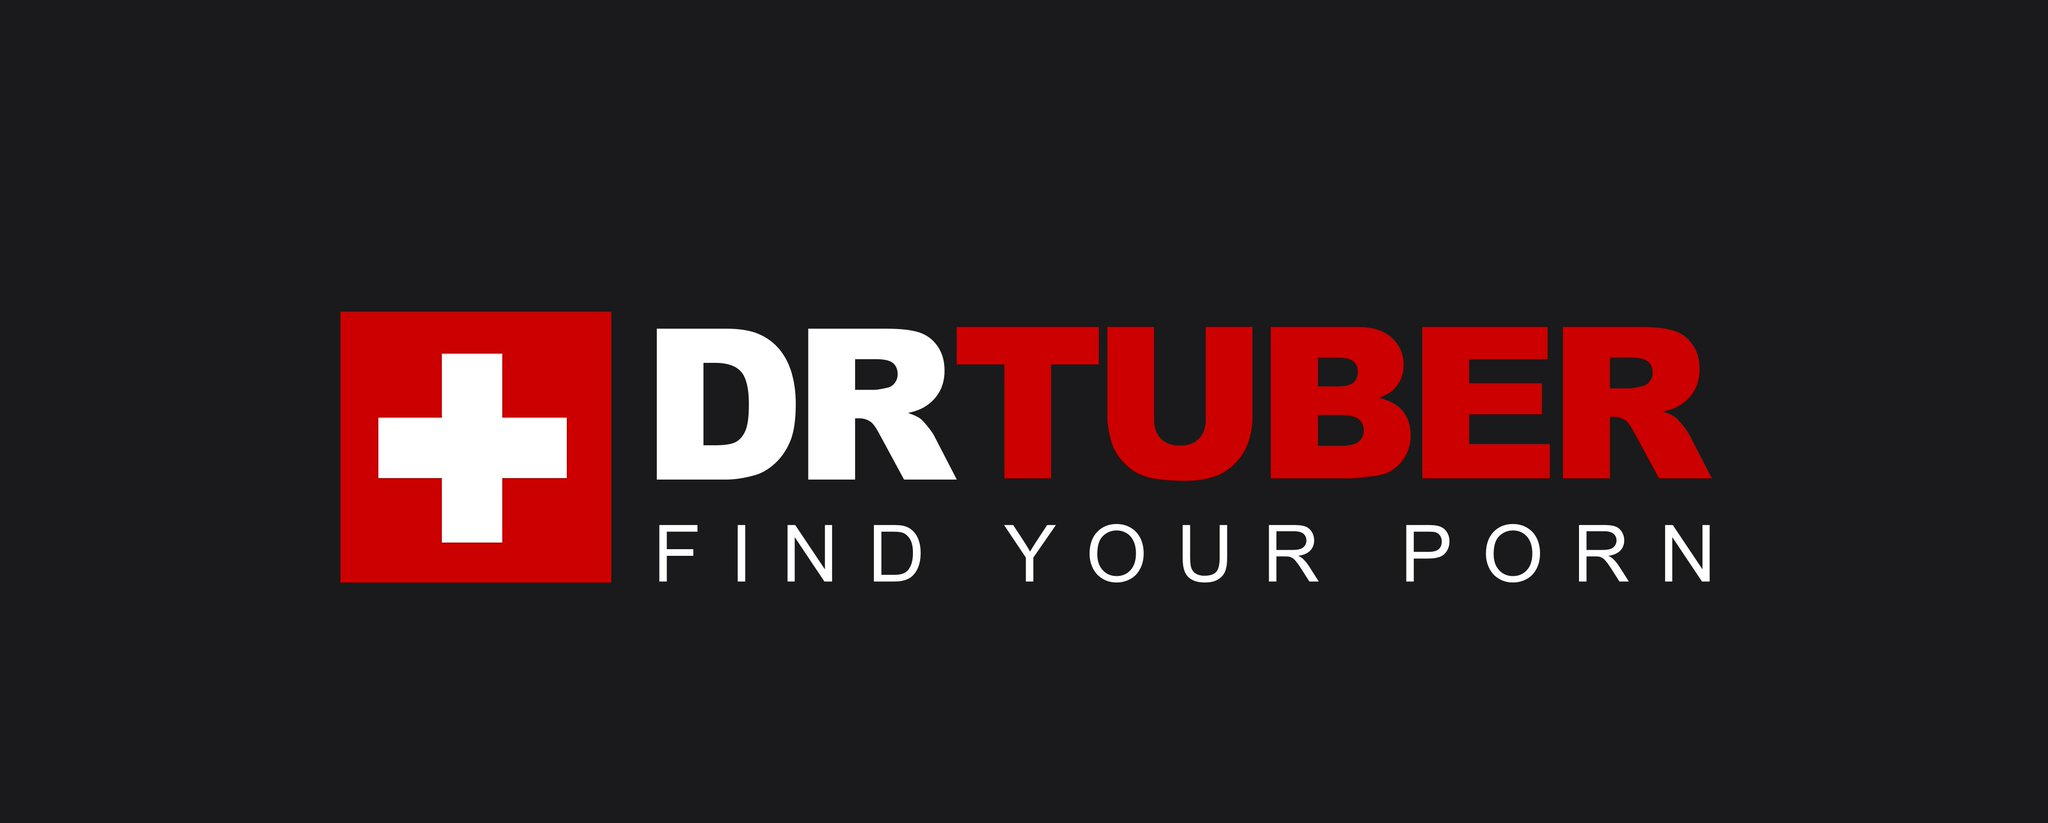 Drtuber Com On Twitter Hi You Will See Exclusive Content Interviews With Stars Of Industry And Lot Of Funny Pics And Gifs Here